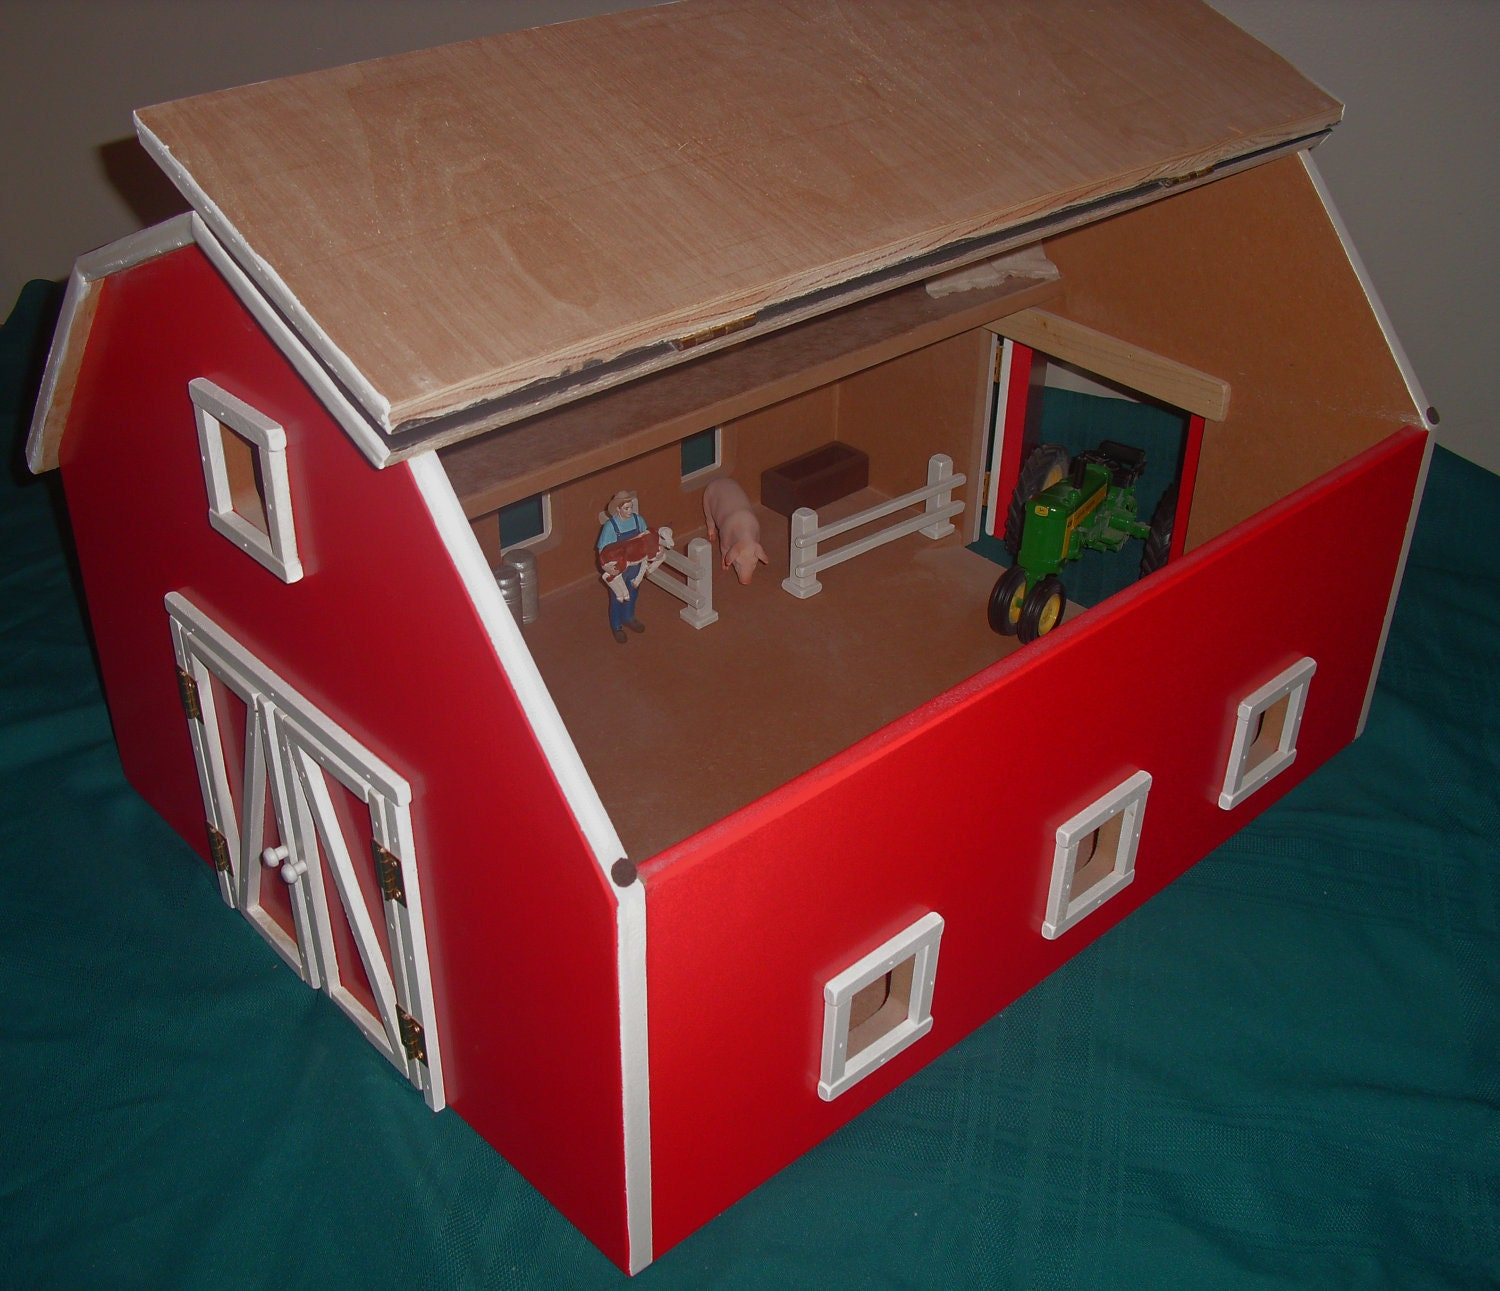 Hand crafted wooden toy barn